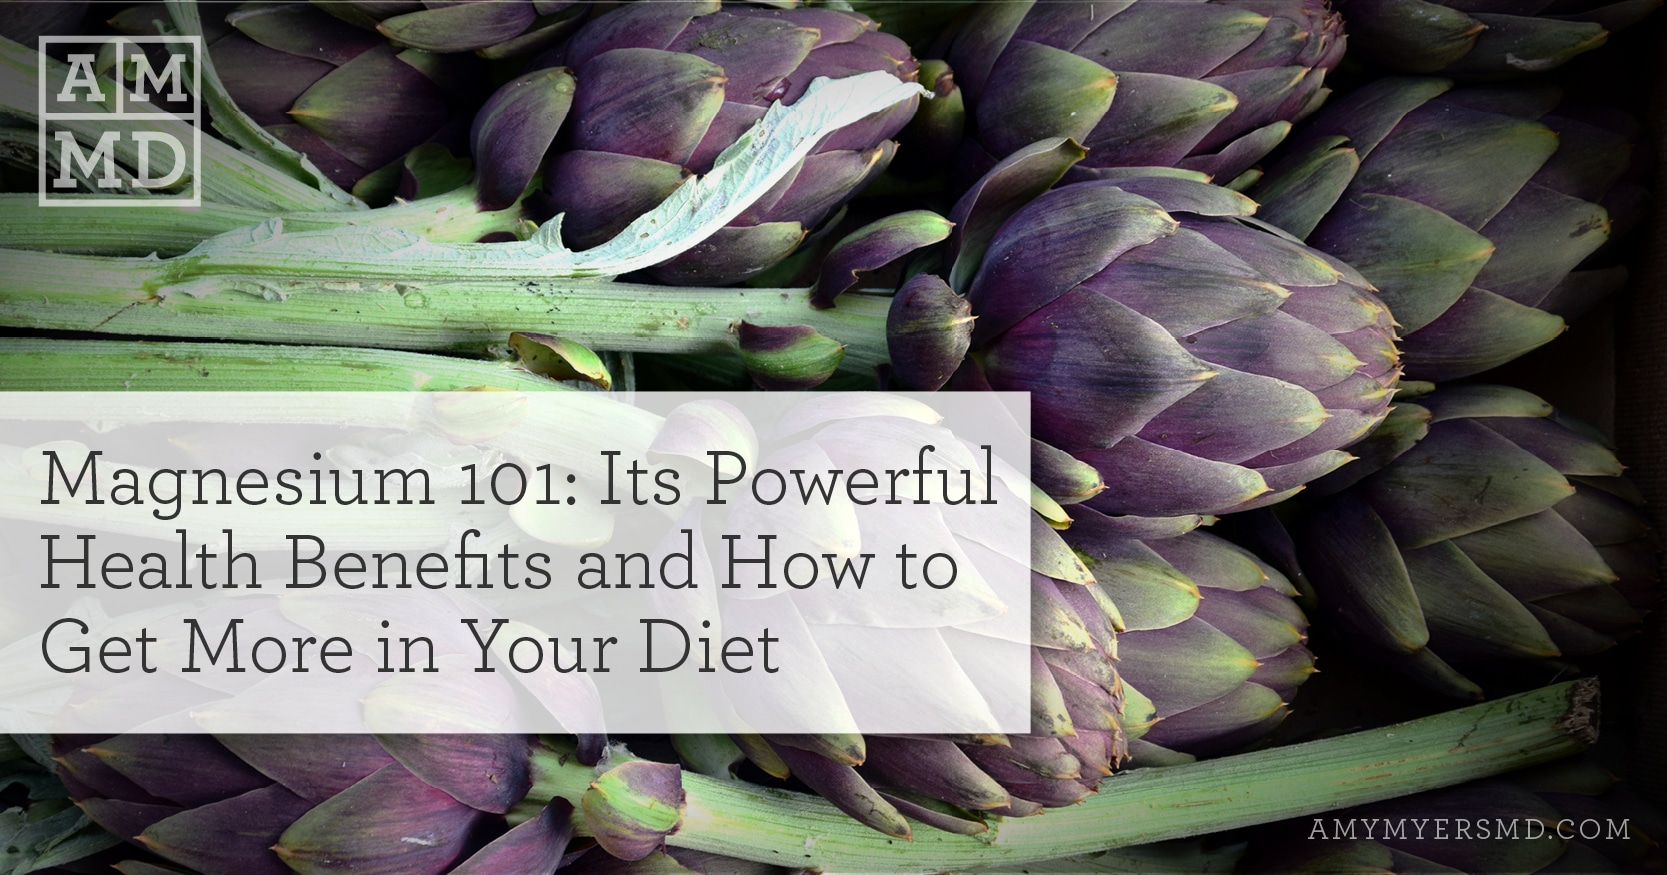 Magnesium Supplements - Powerful Health Benefits and How to Get More in Your Diet - Artichokes - Featured Image - Amy Myers MD